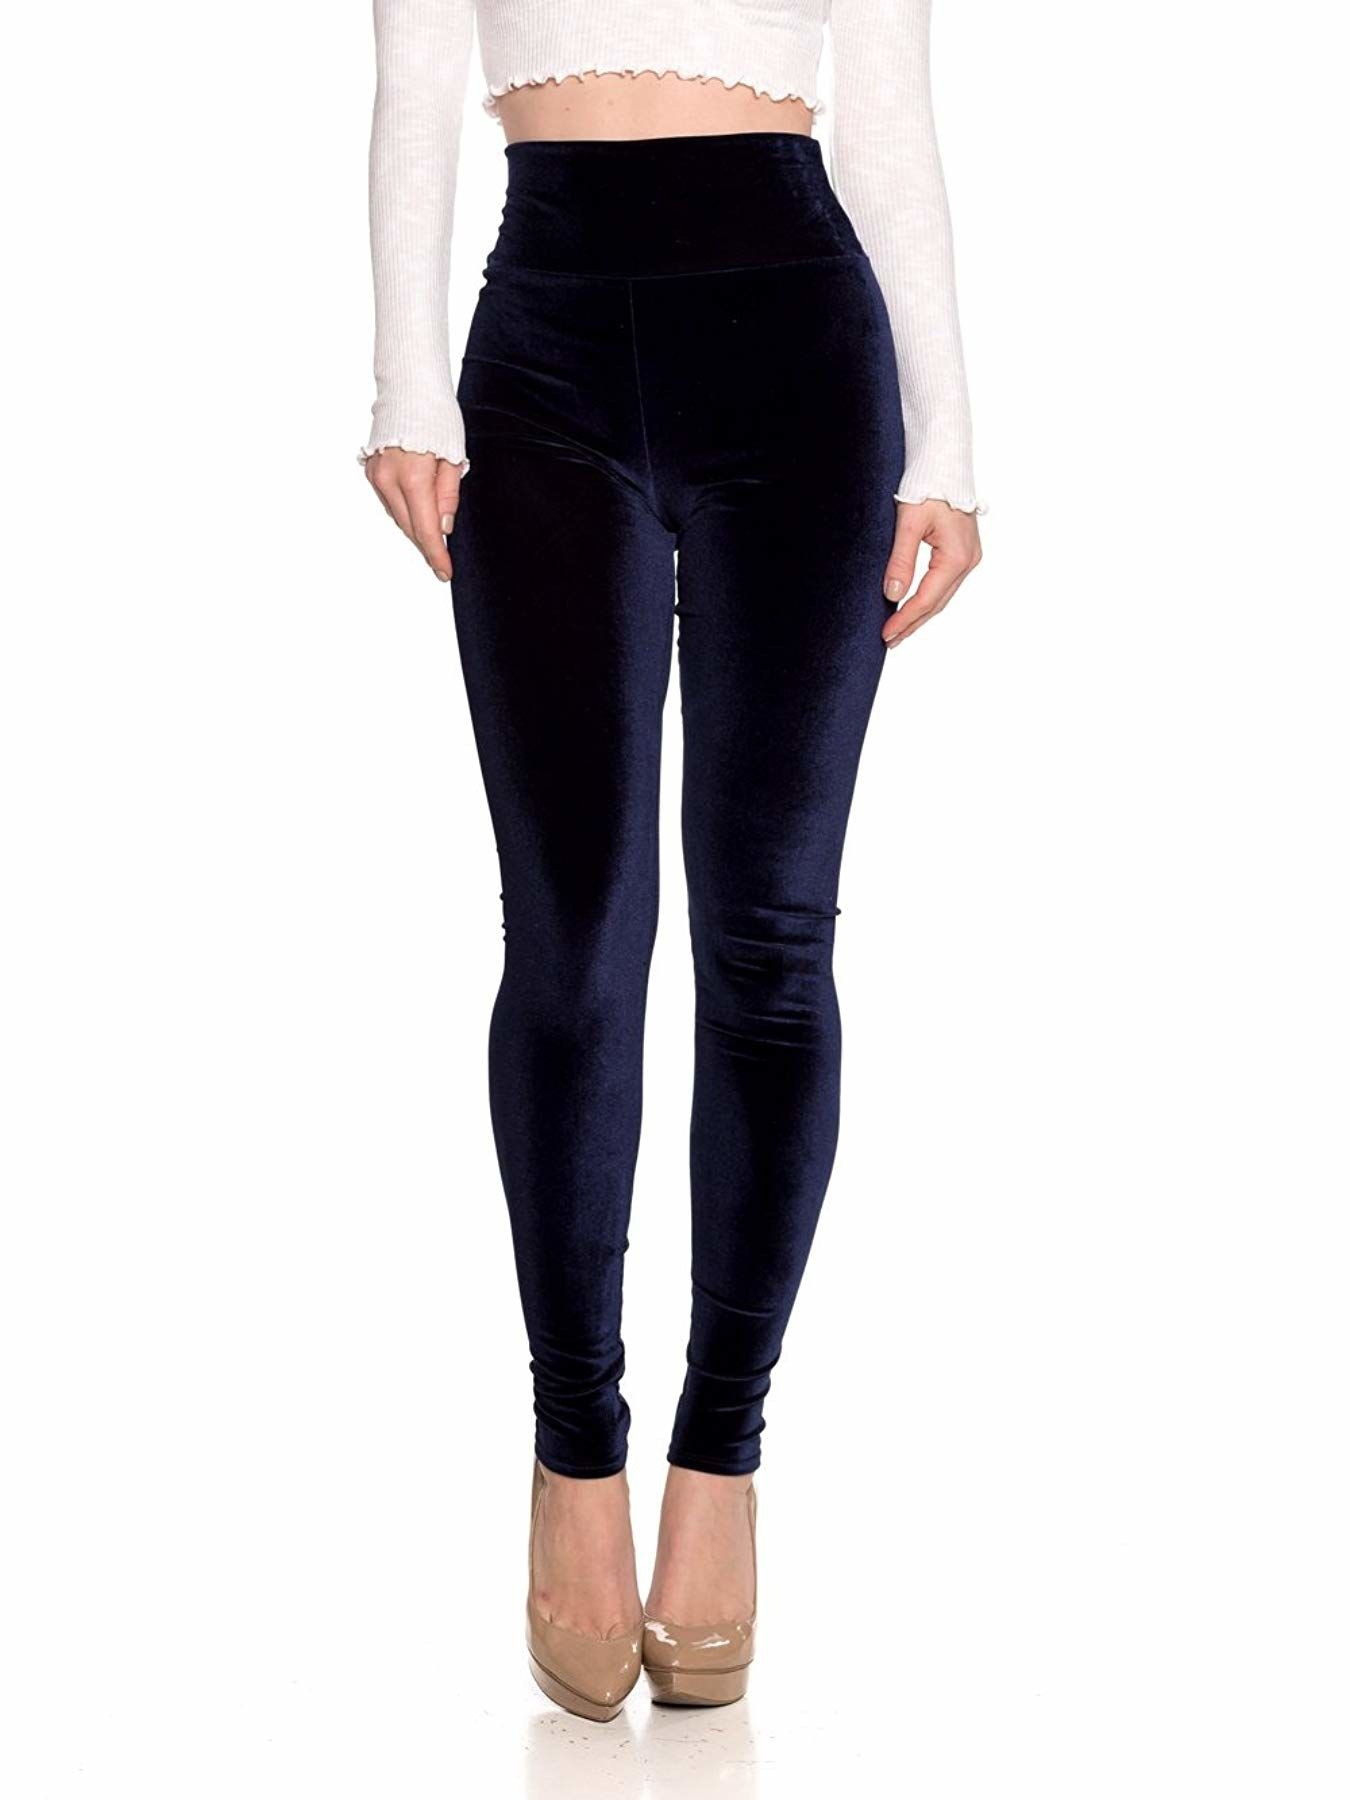 0348abfaa5 26 Stylish Pairs Of Leggings For Anyone Who Hates Actual Pants ...